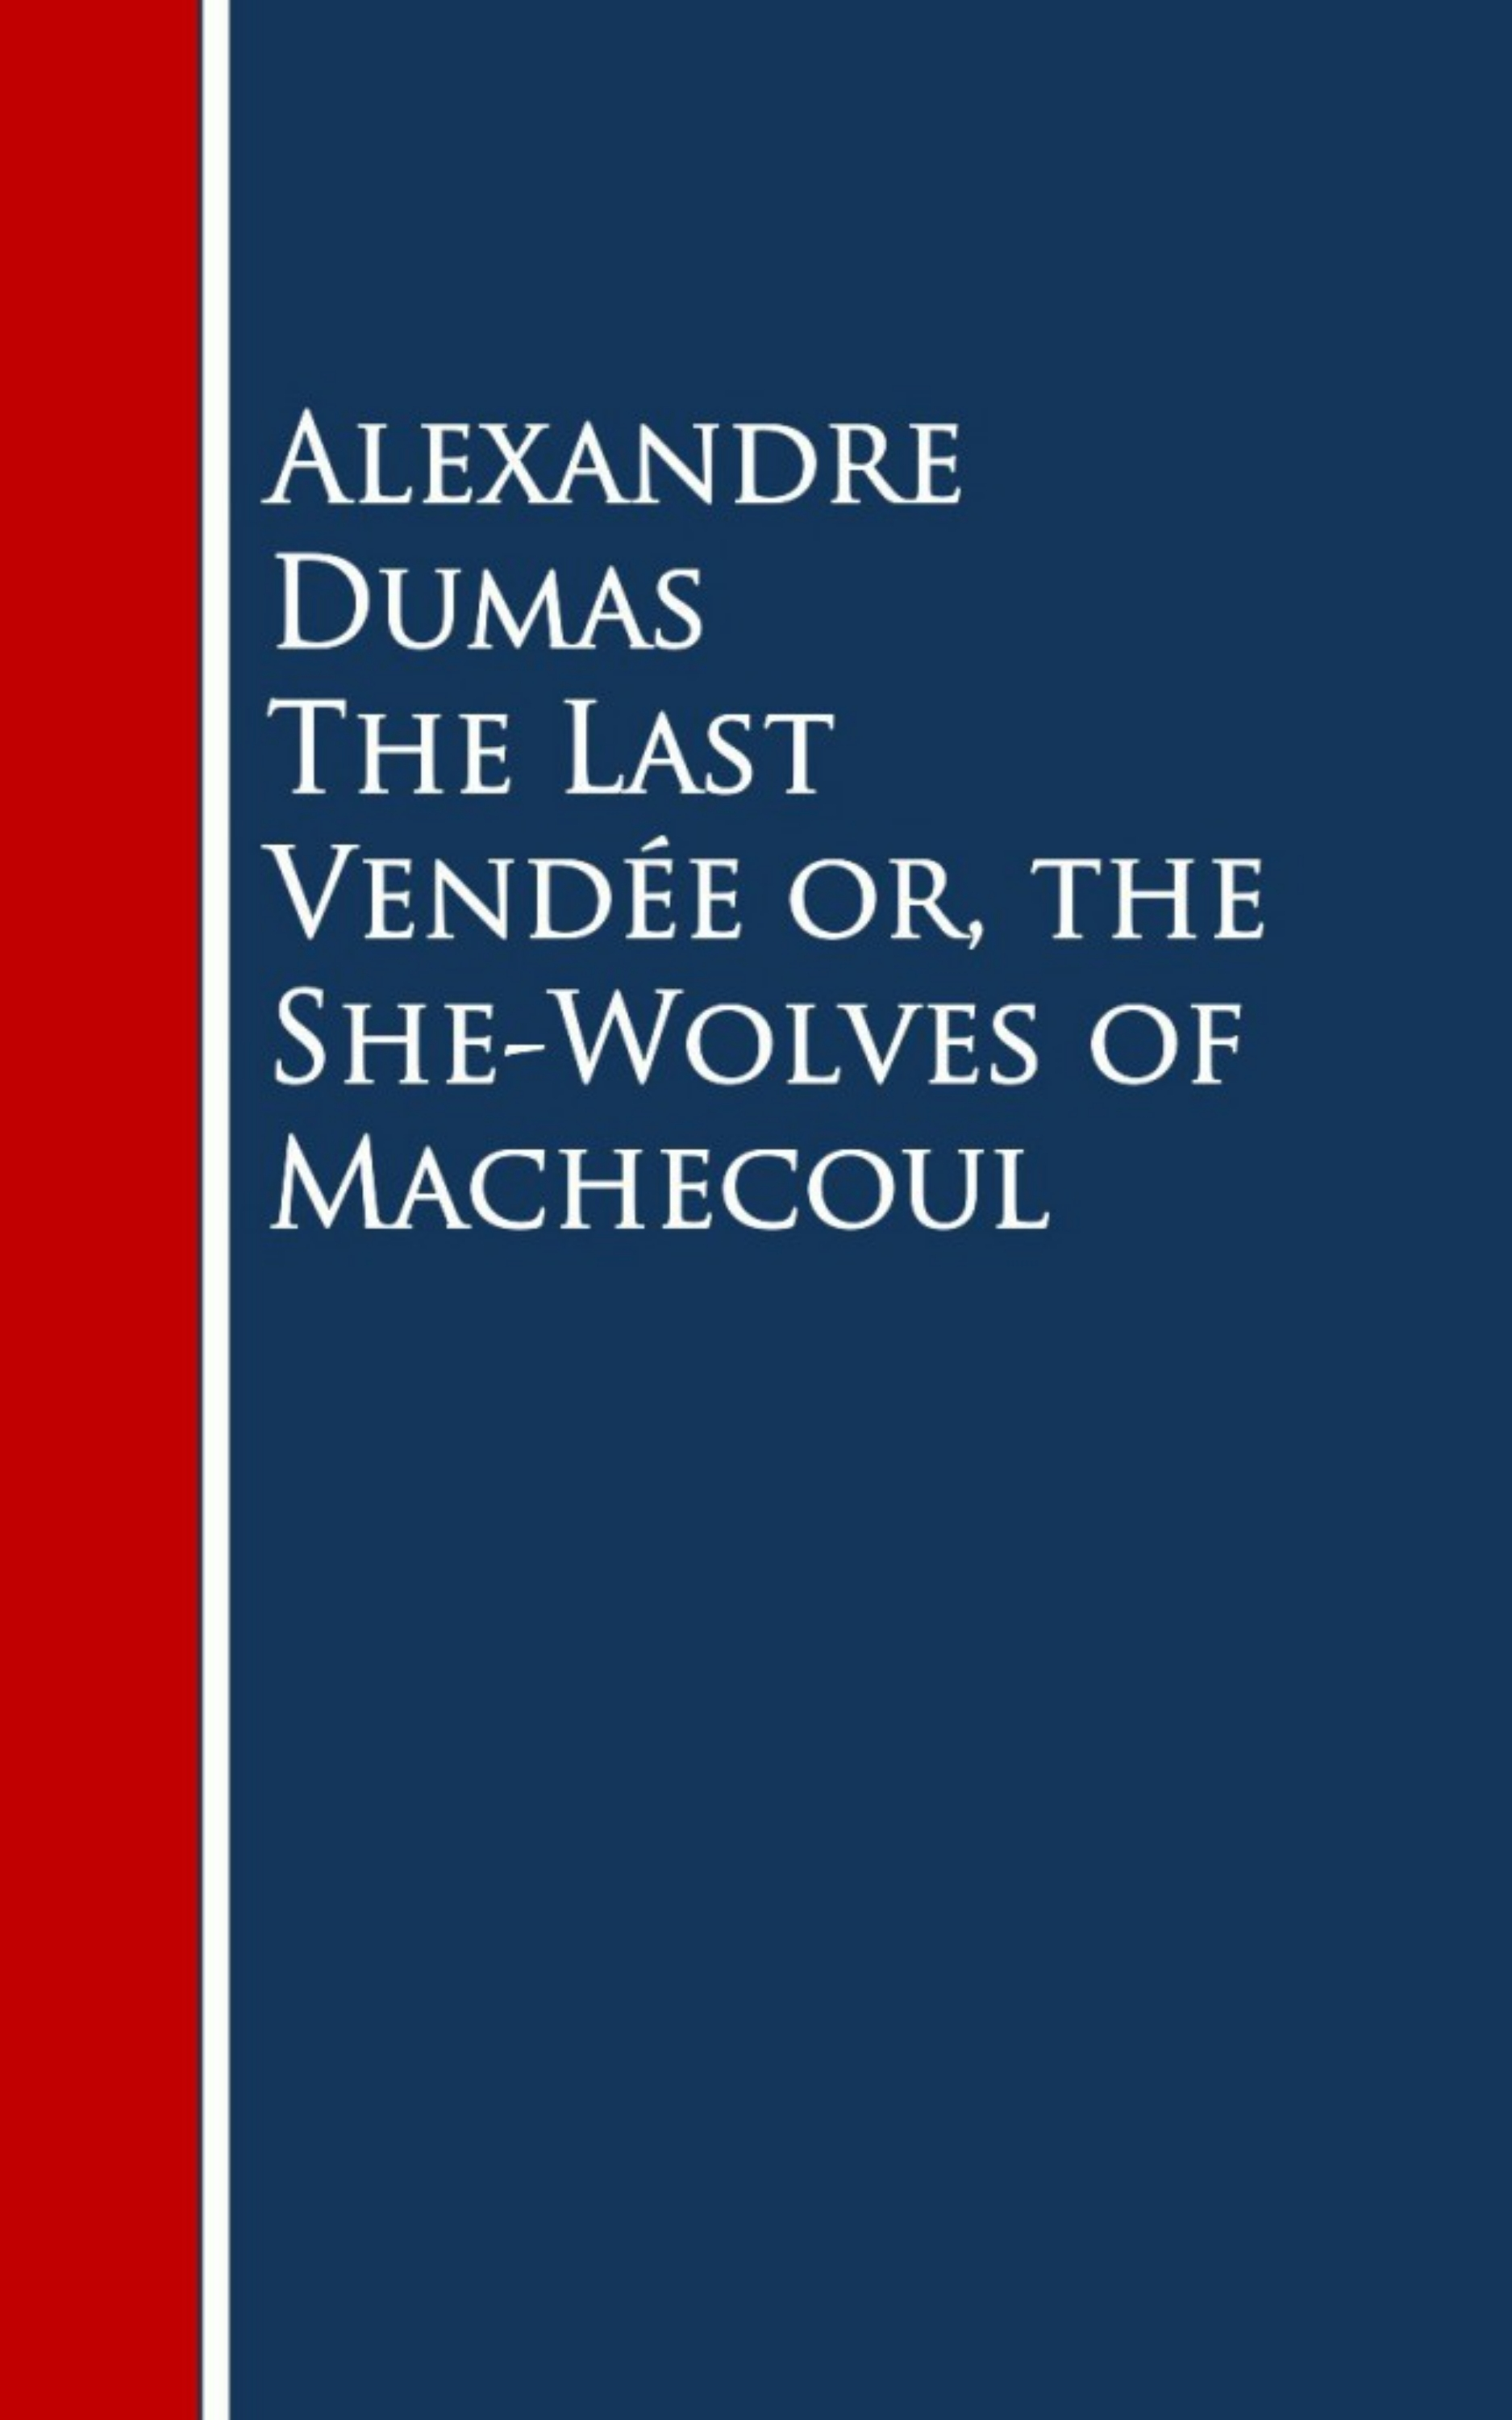 цена Alexandre Dumas The Last Vendee or, the She-Wolves of Machecoul онлайн в 2017 году